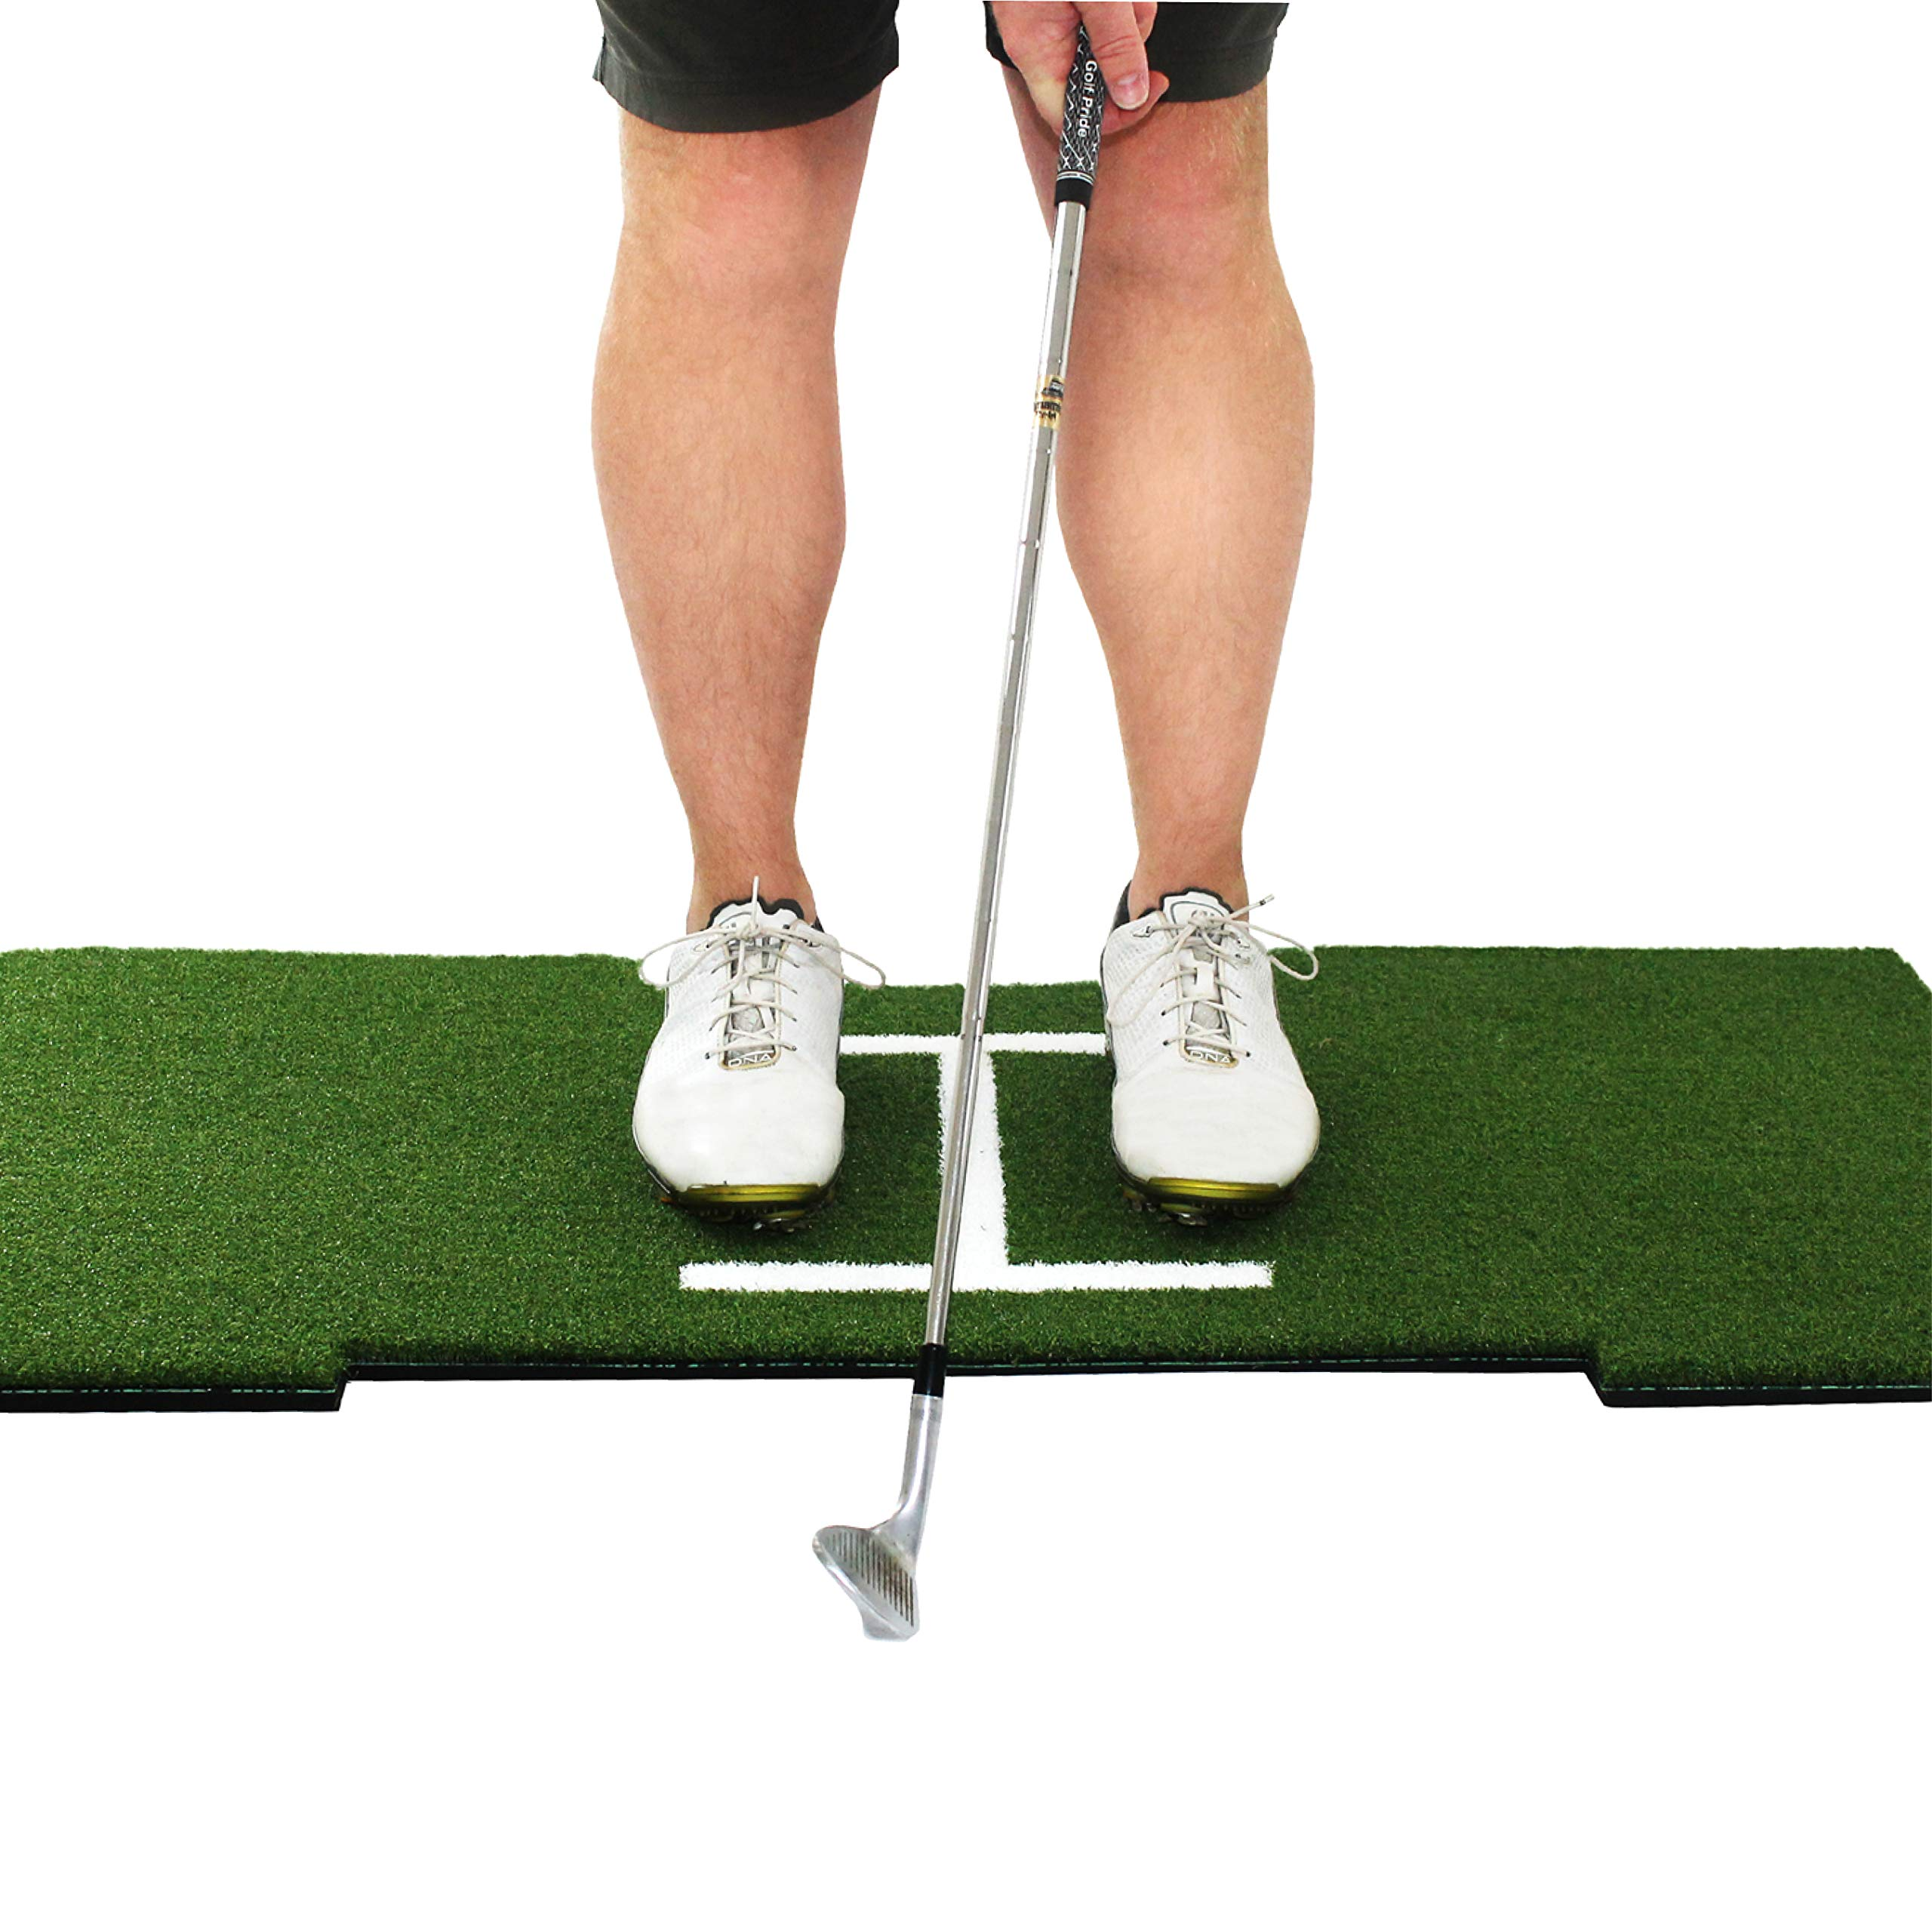 Rukket Standing Golf Hitting Grass Mat | Realistic Fairway and Stance Alignment Graphic | Portable Driving, Chipping, Training Aids, Equipment for Residential Backyard and Indoor Practice (4ft x 2ft) by Rukket Sports